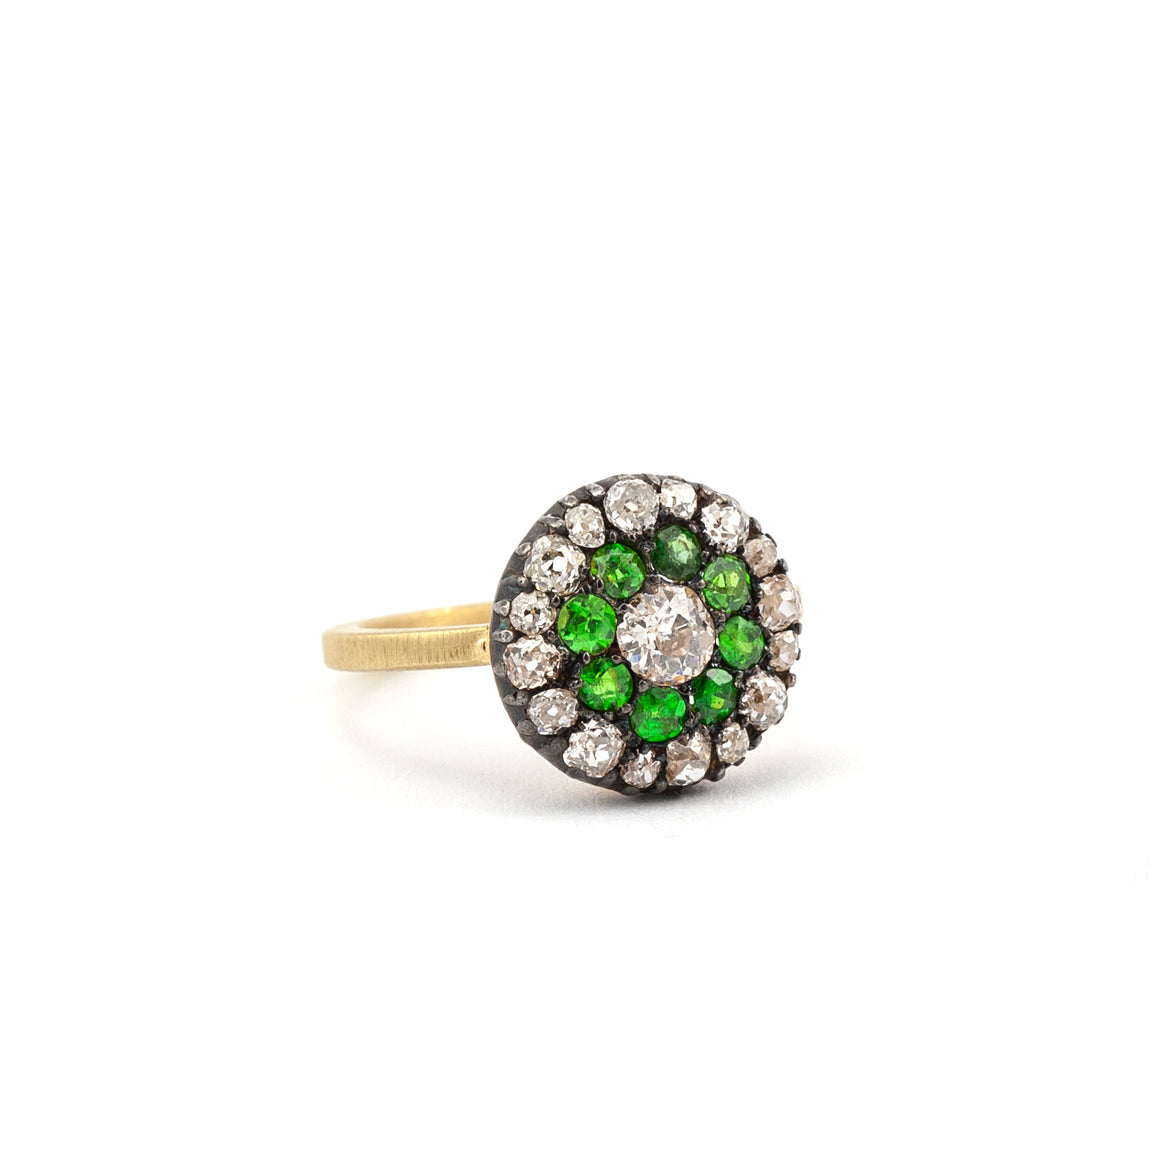 19th Century Vintage Demantoid Ring - Lesley Ann Jewels